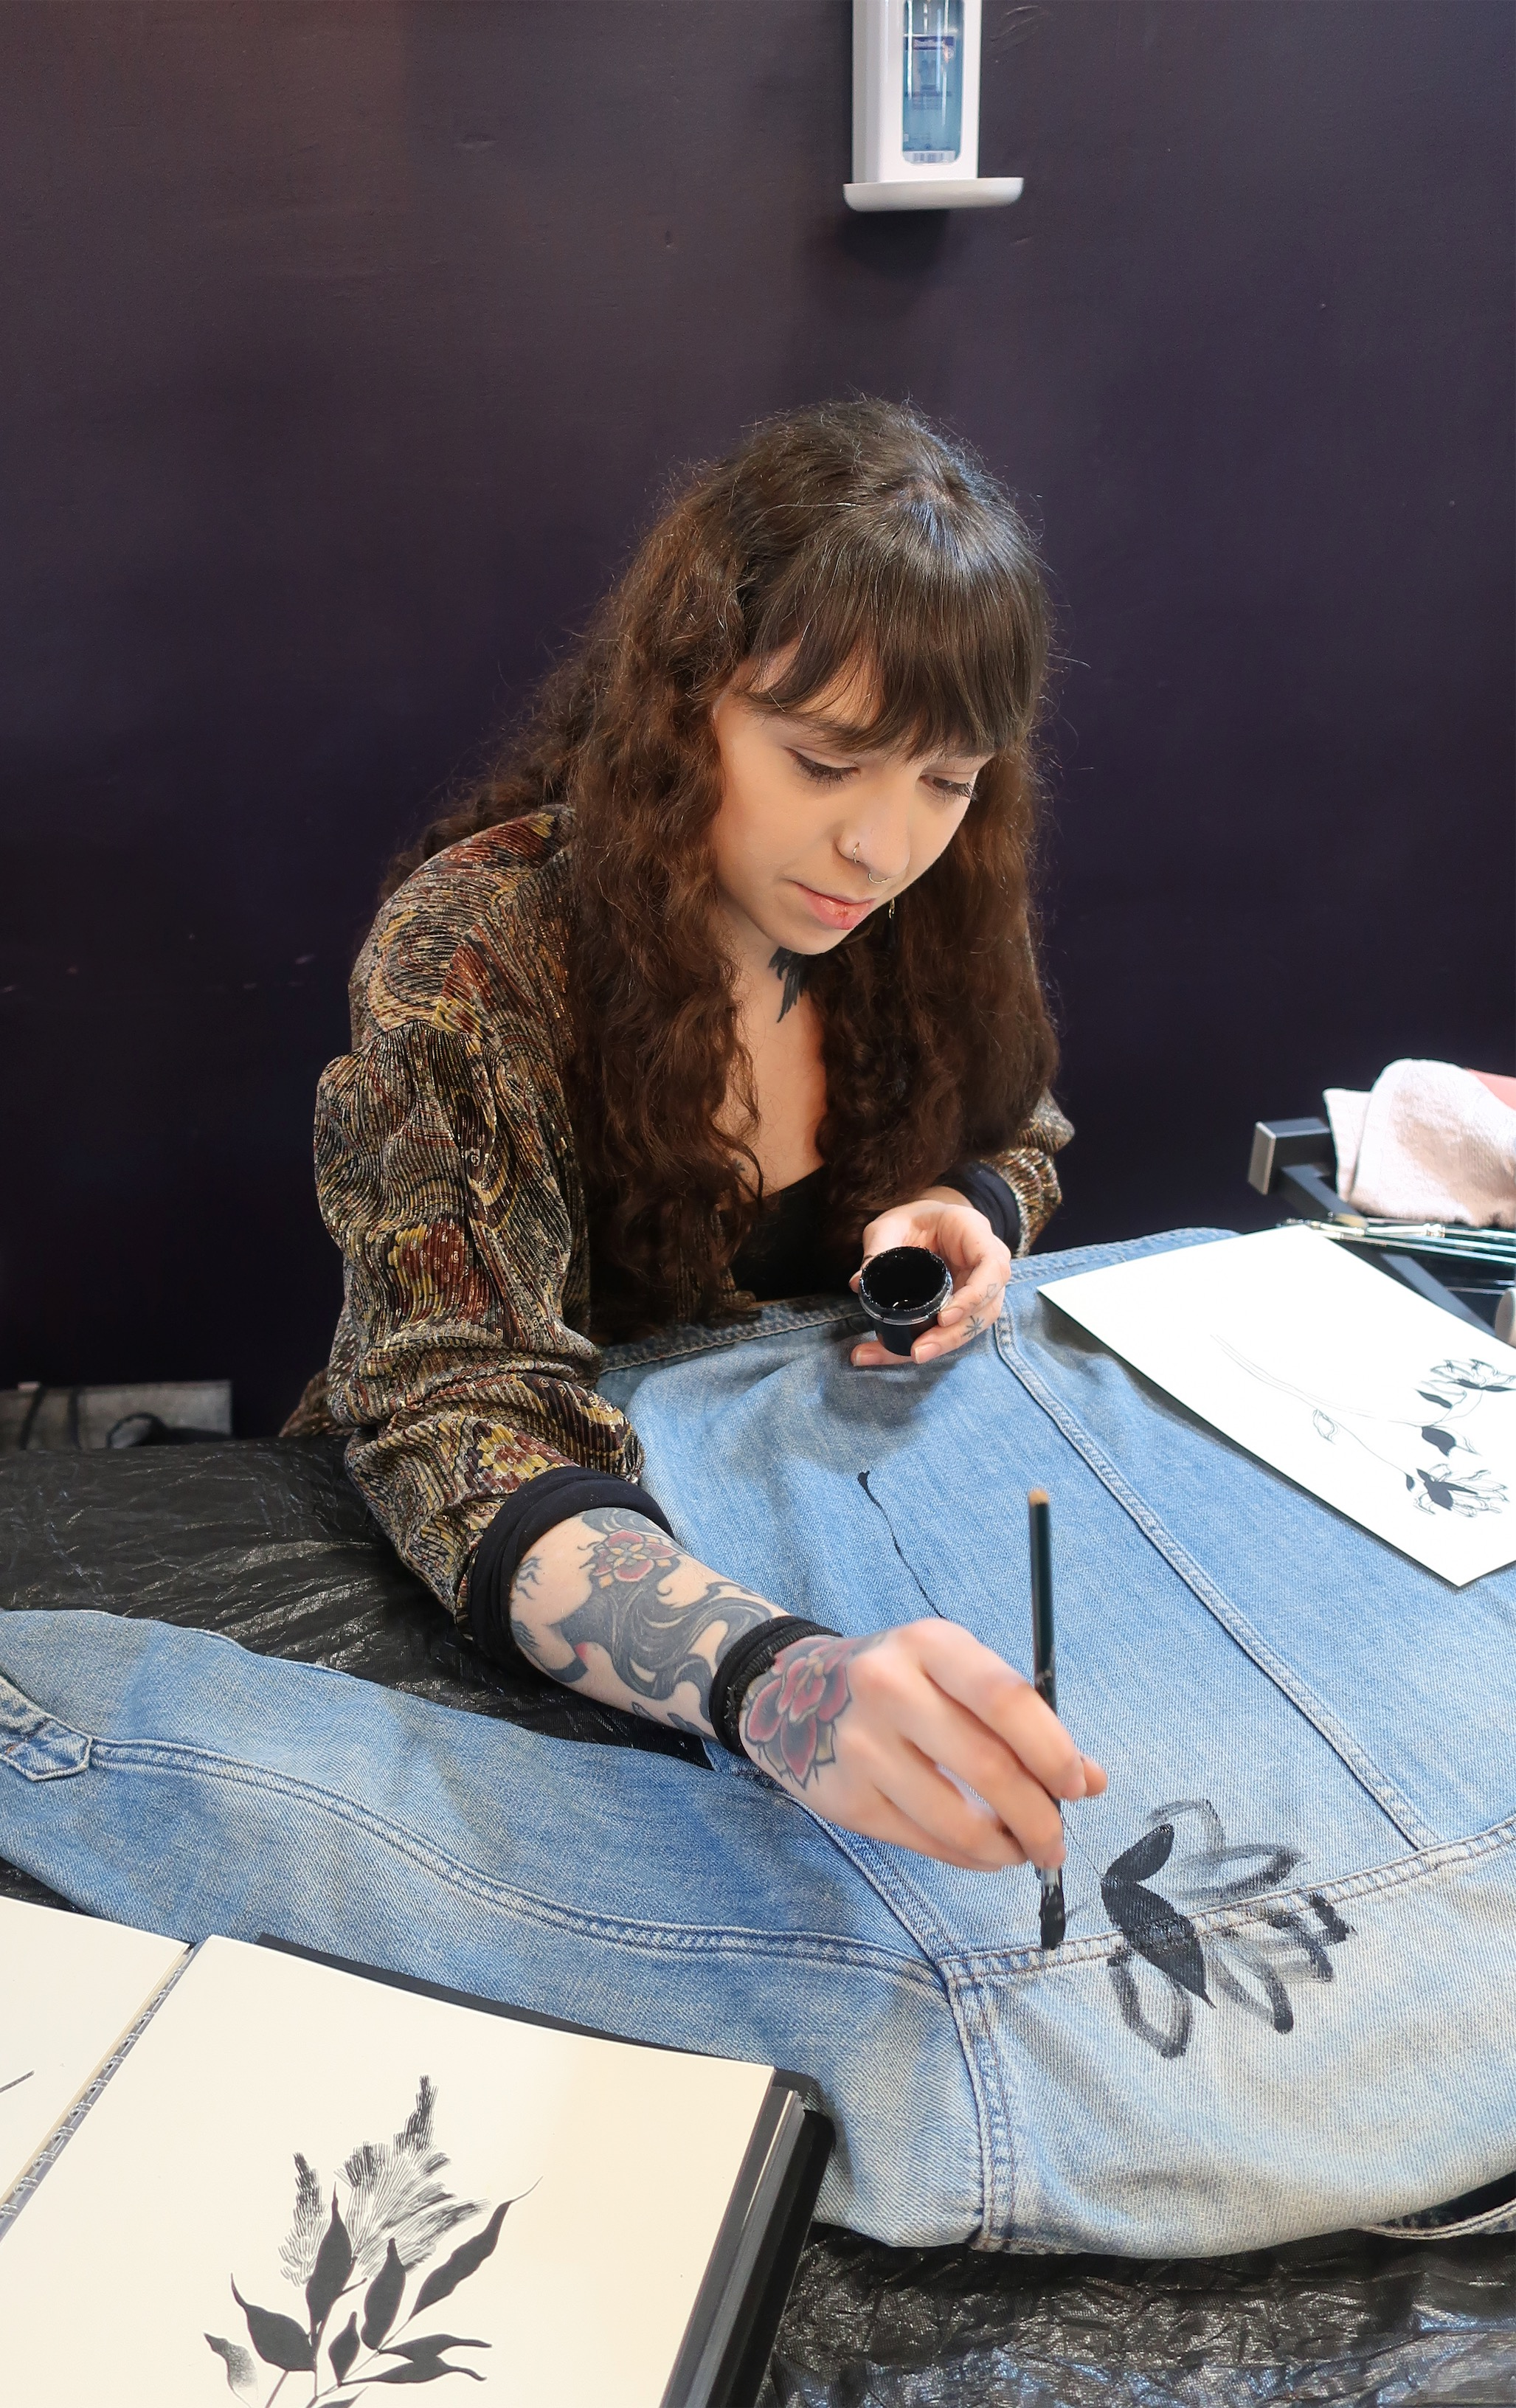 Artist Alba Rey handpainting on denim.jpeg